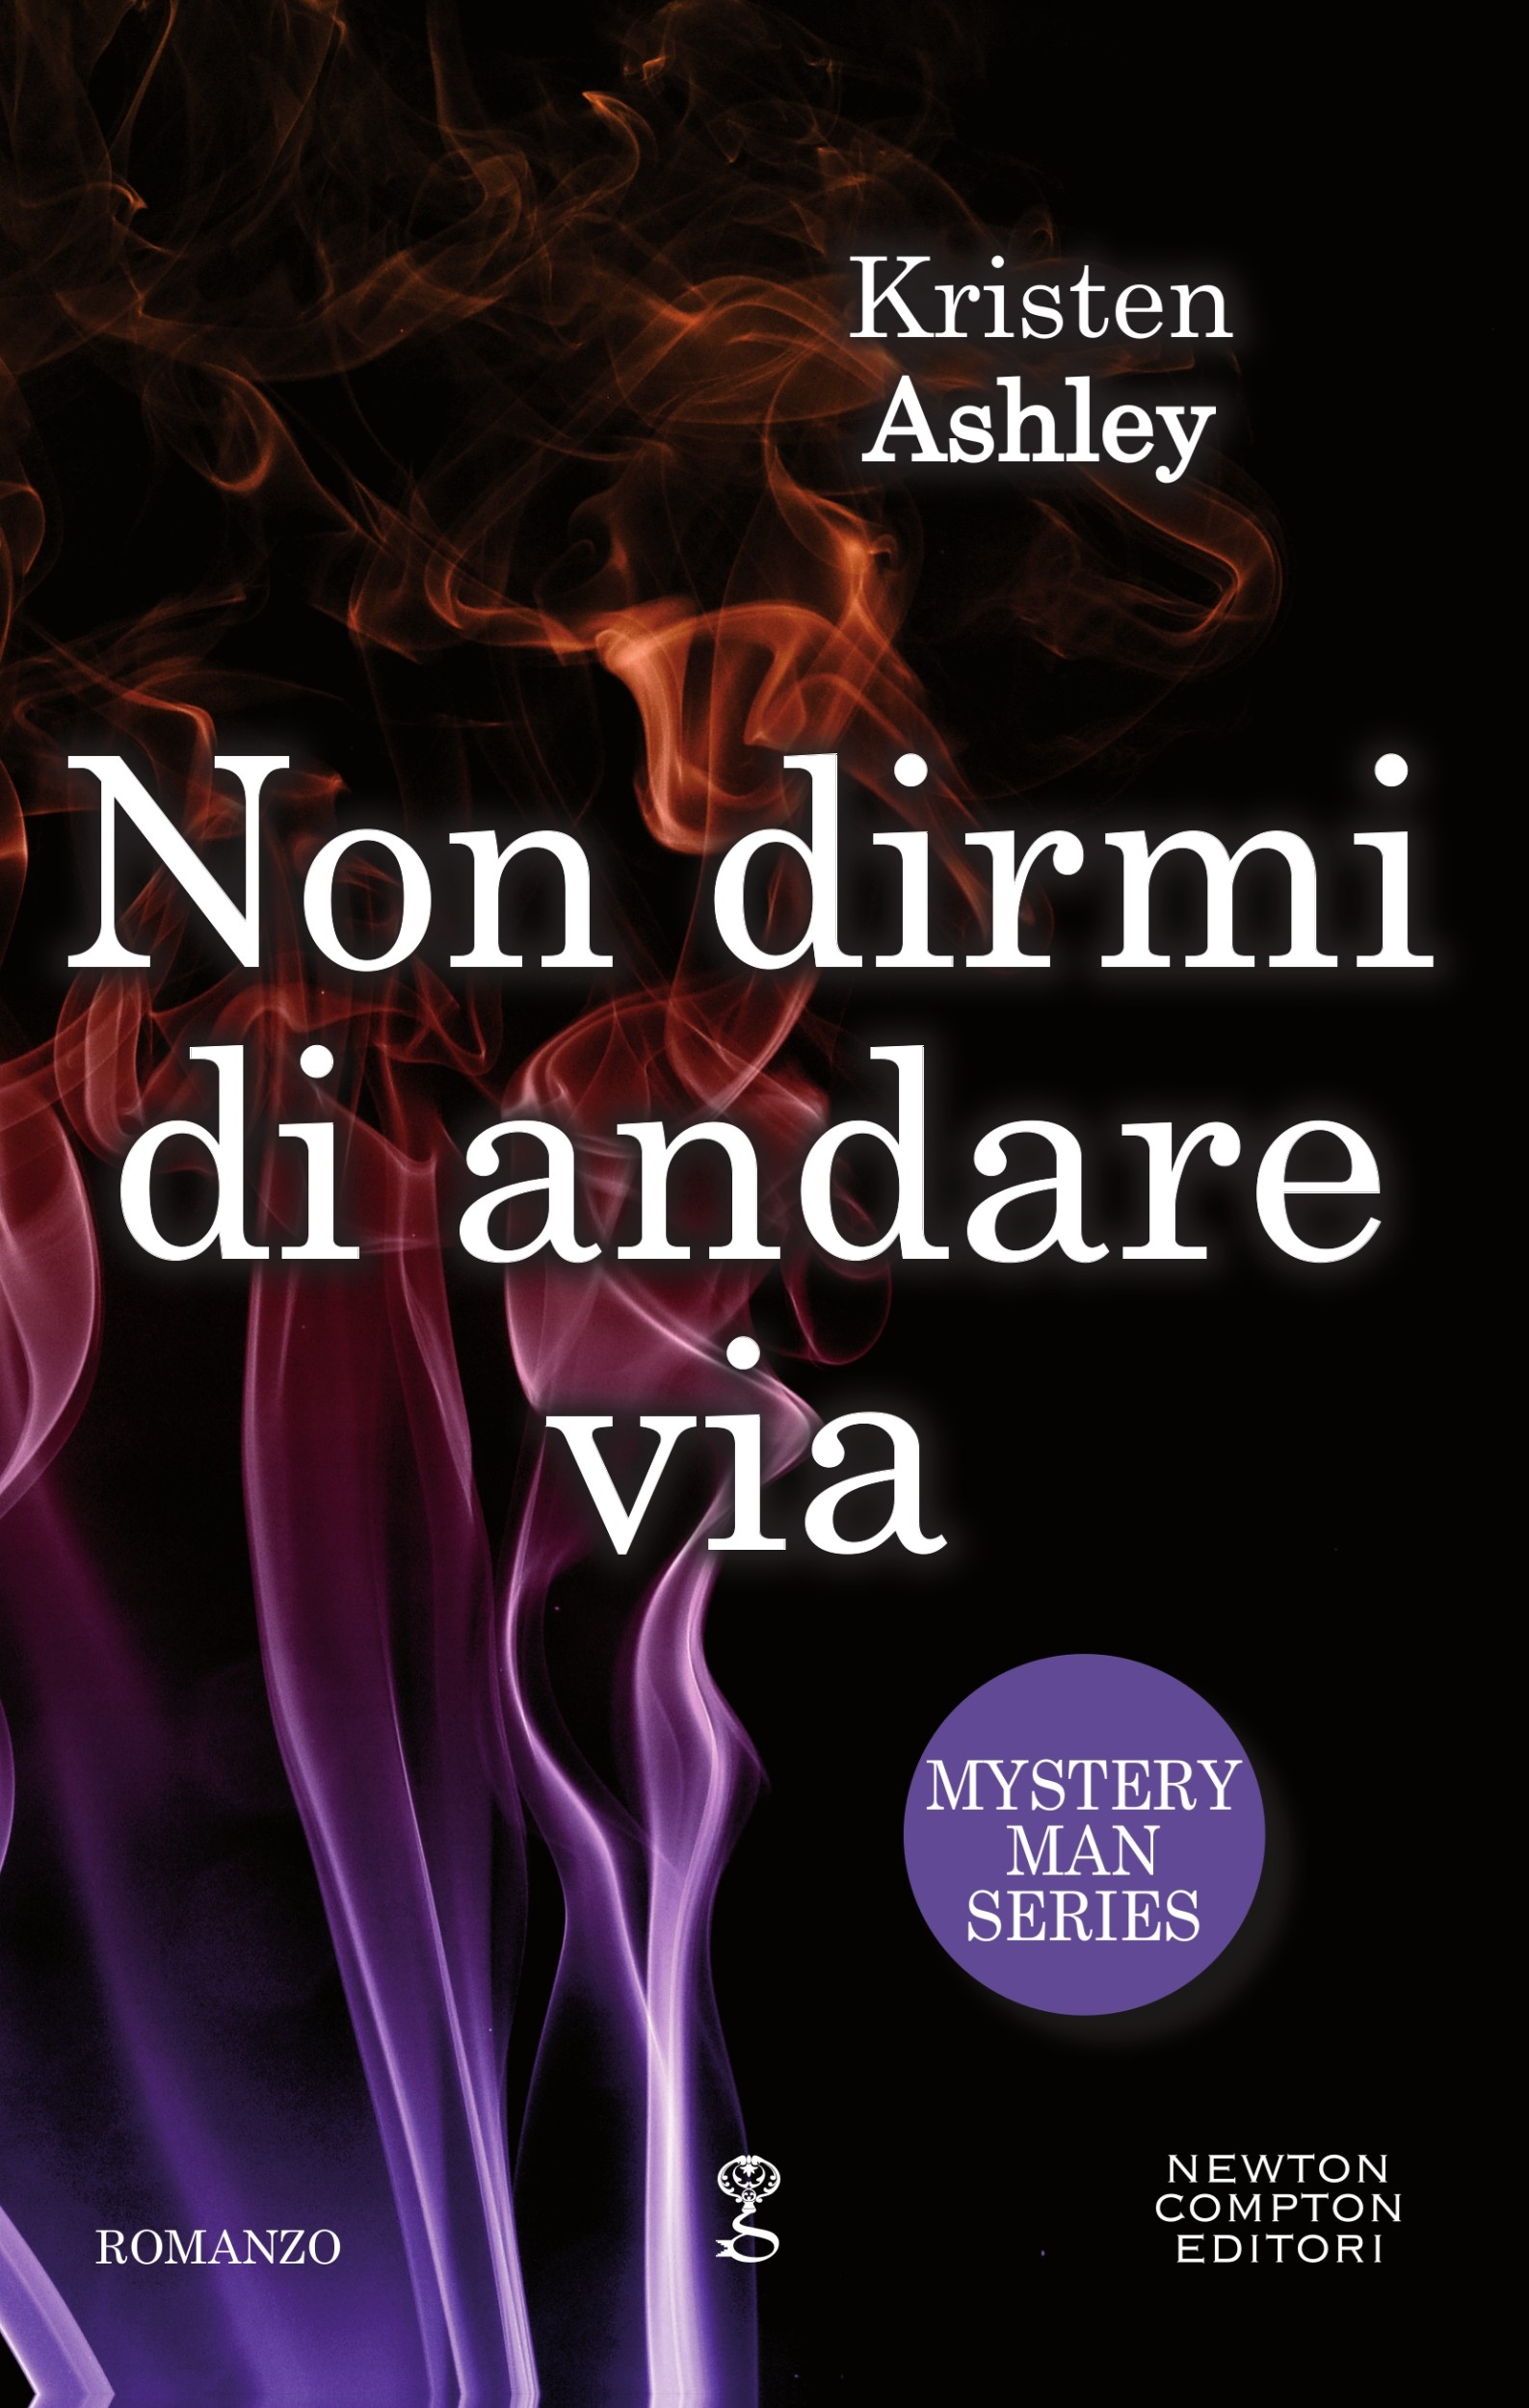 Book Cover Images Api : Non dirmi di andare via kristen ashley ebook bookrepublic